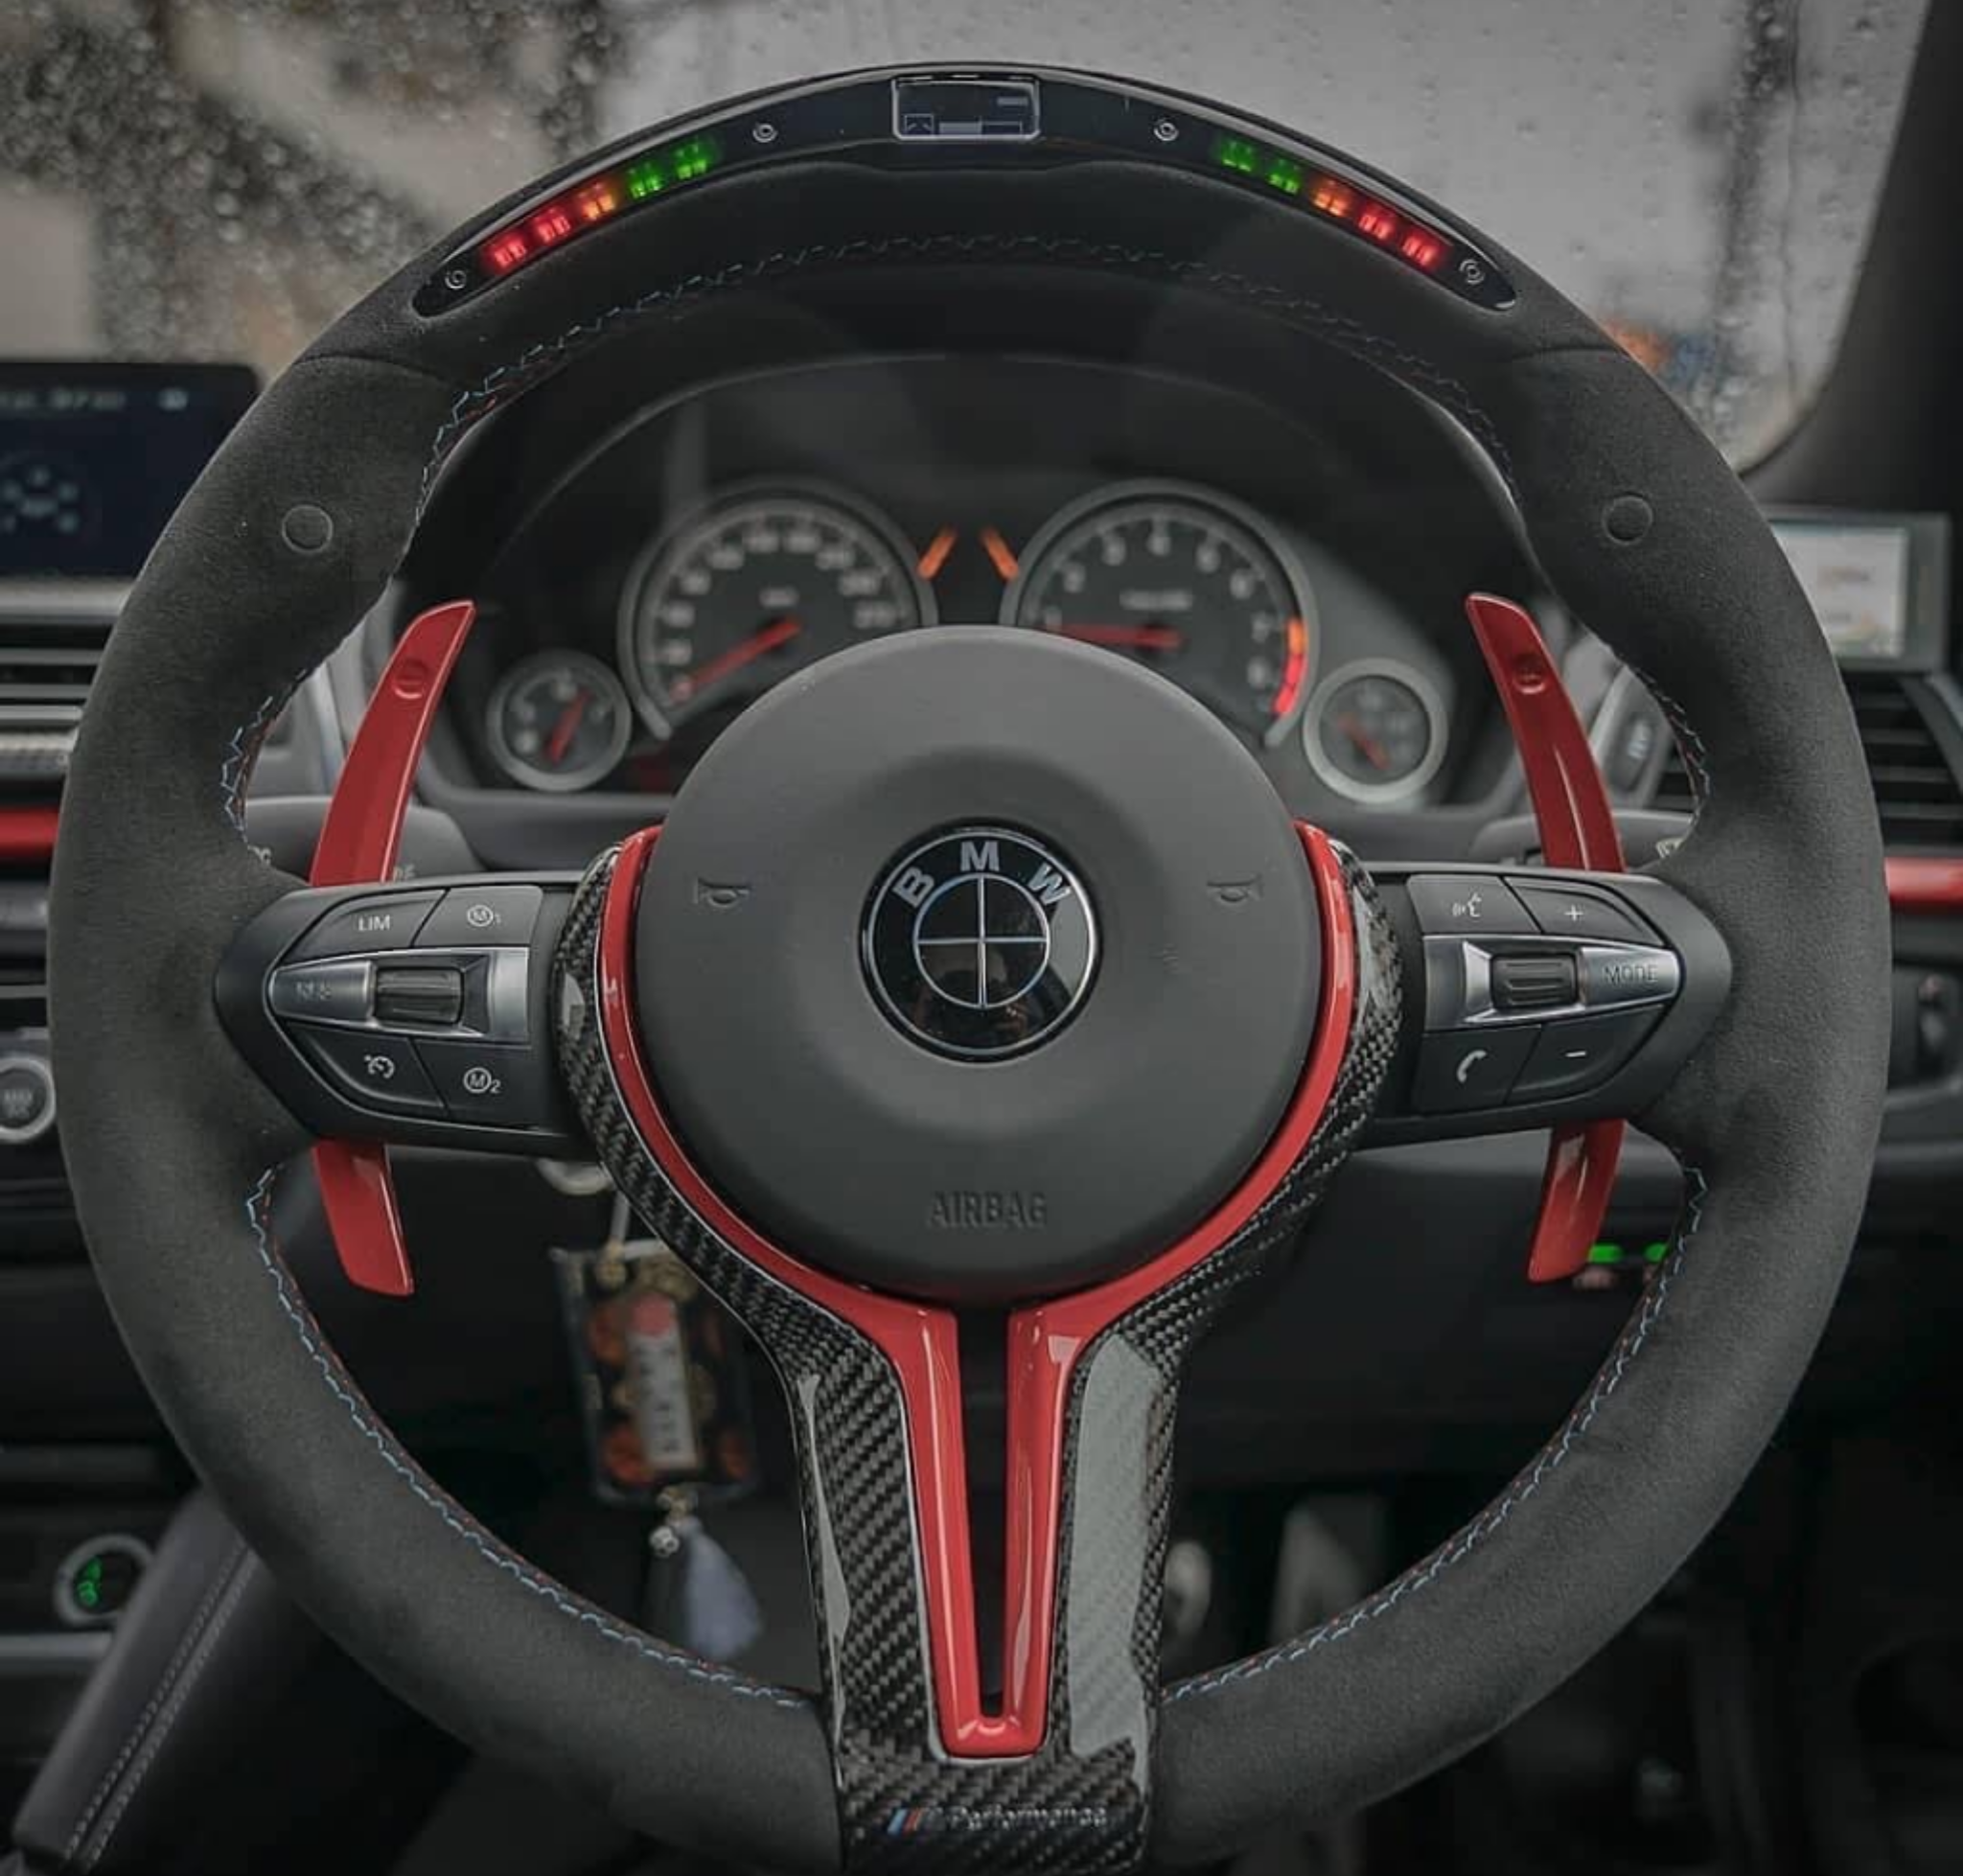 2018 Bmw M4 Performance Steering Wheel (With Images)